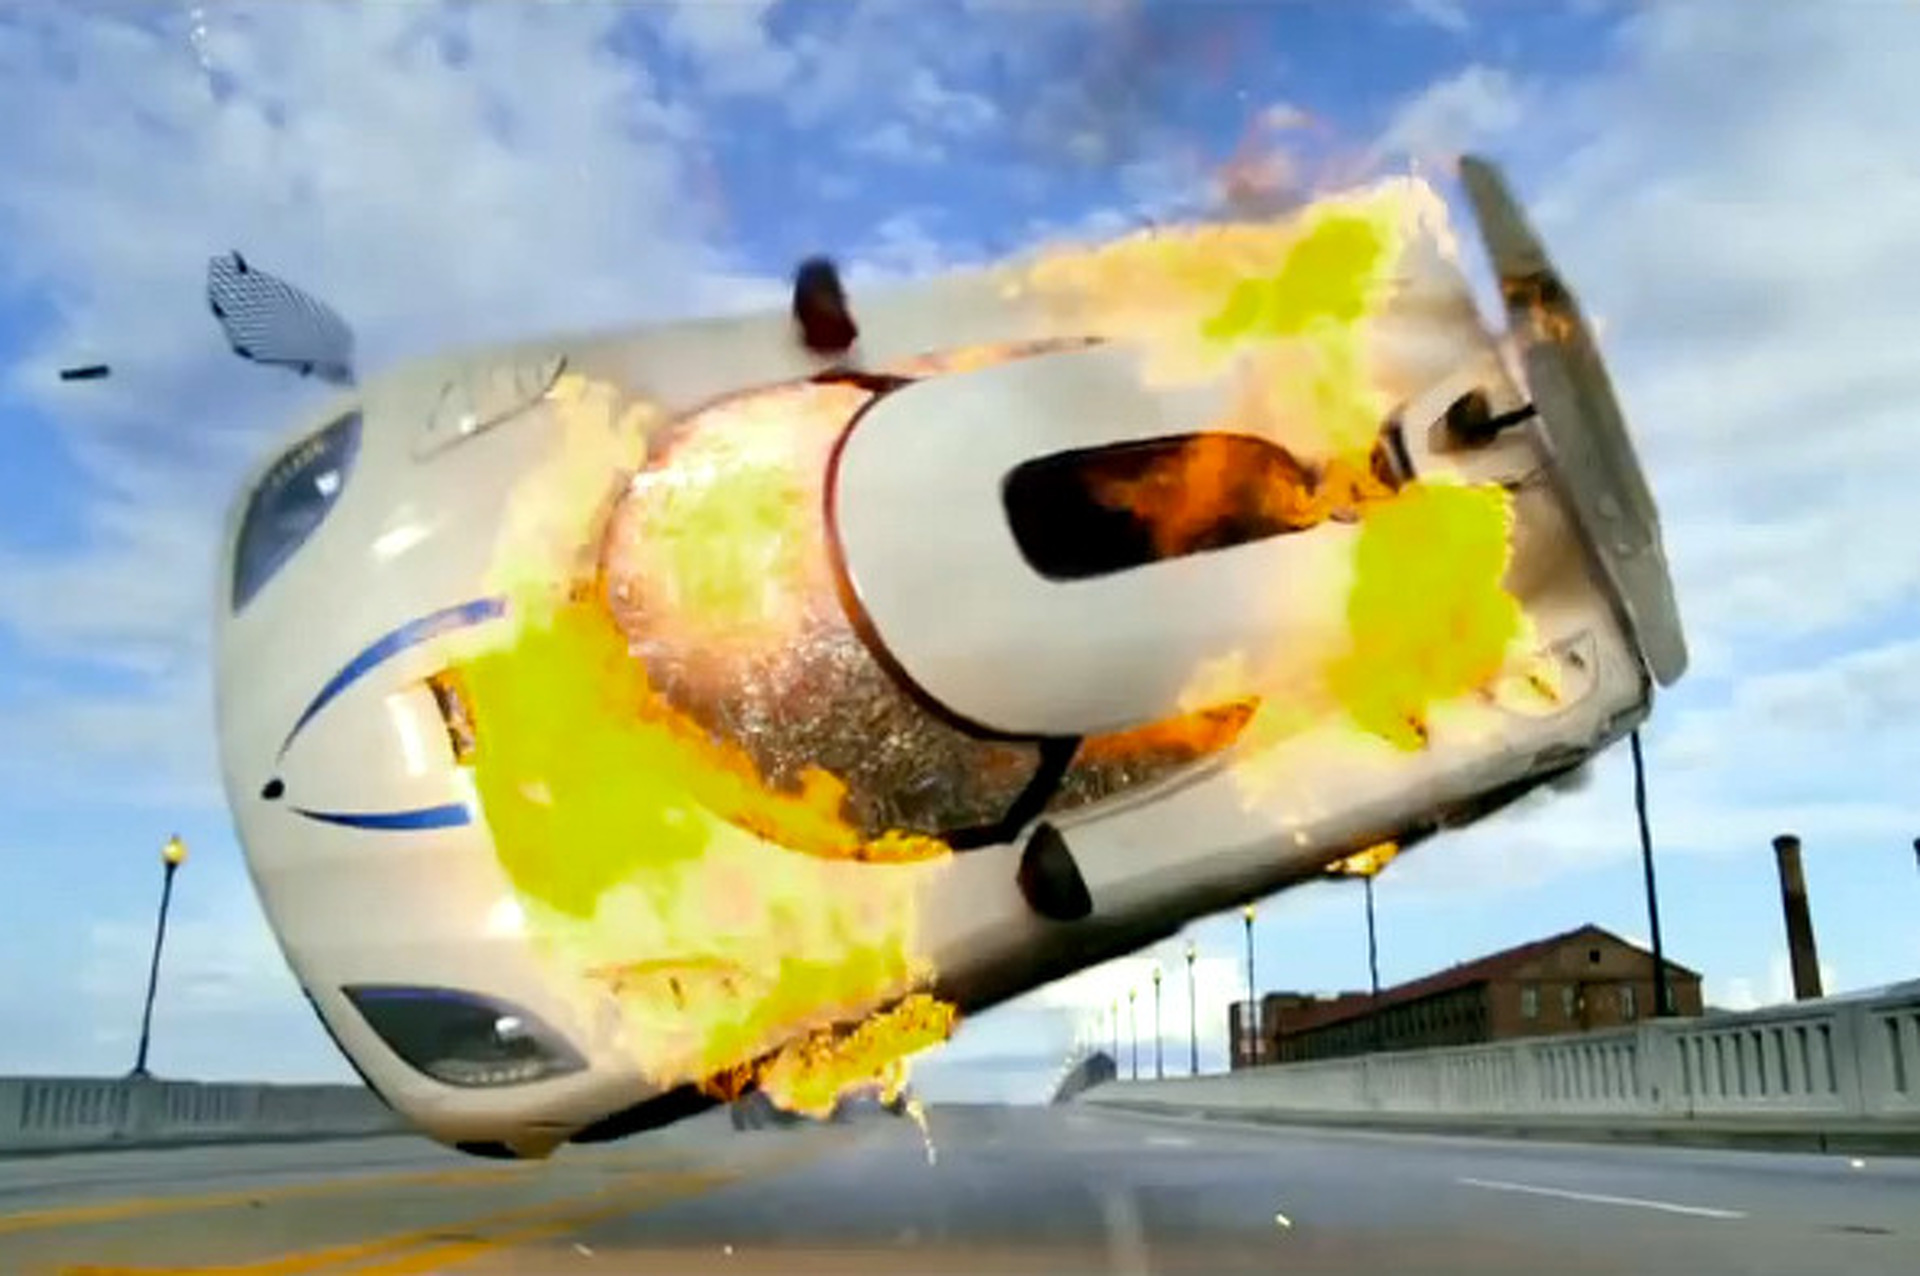 'Need For Speed' Director Scott Waugh On Bringing a Video Game to Life